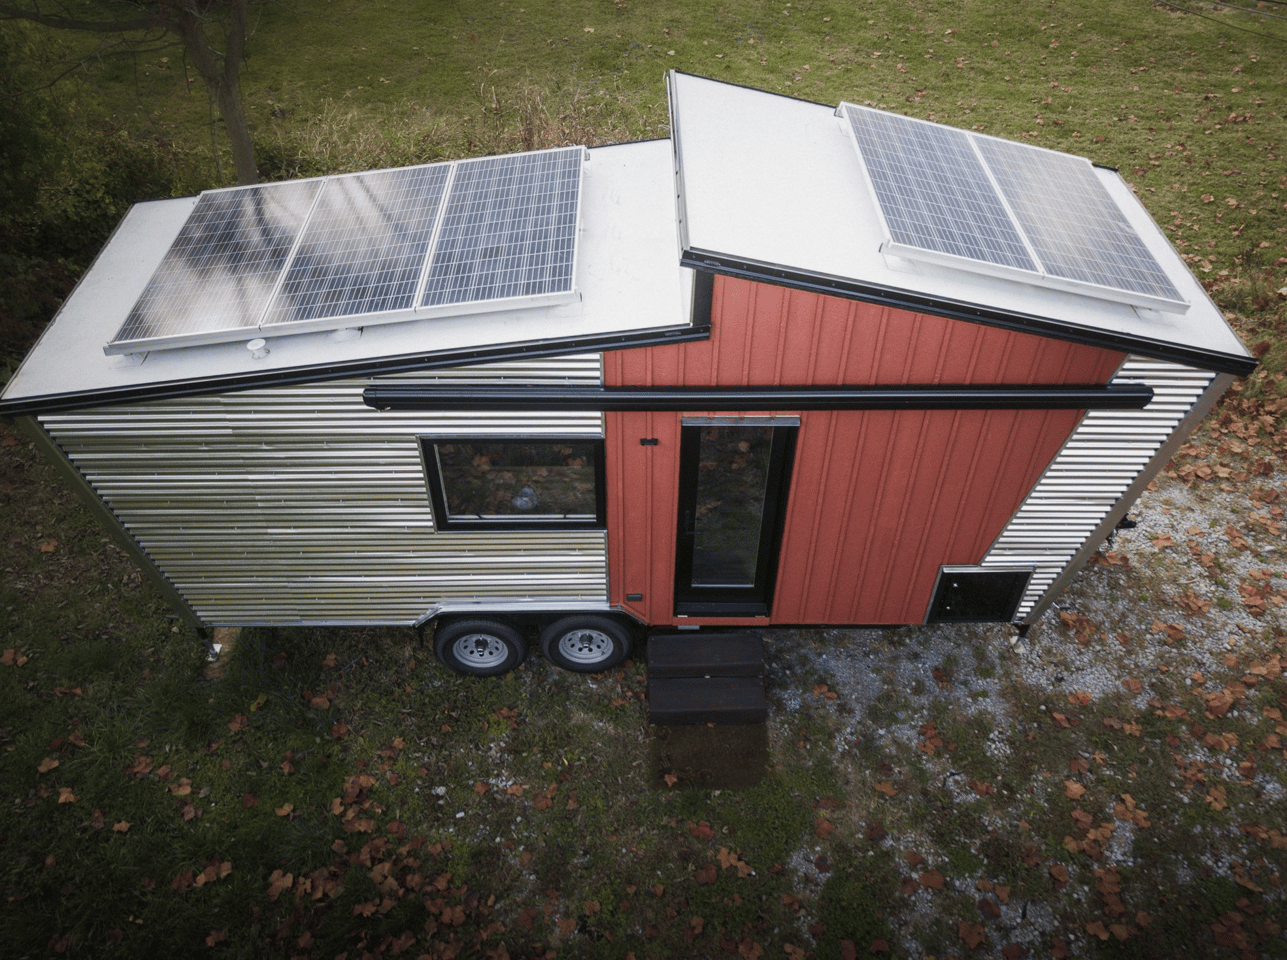 The GoSun Dream gets power from a roof-based solar panel array